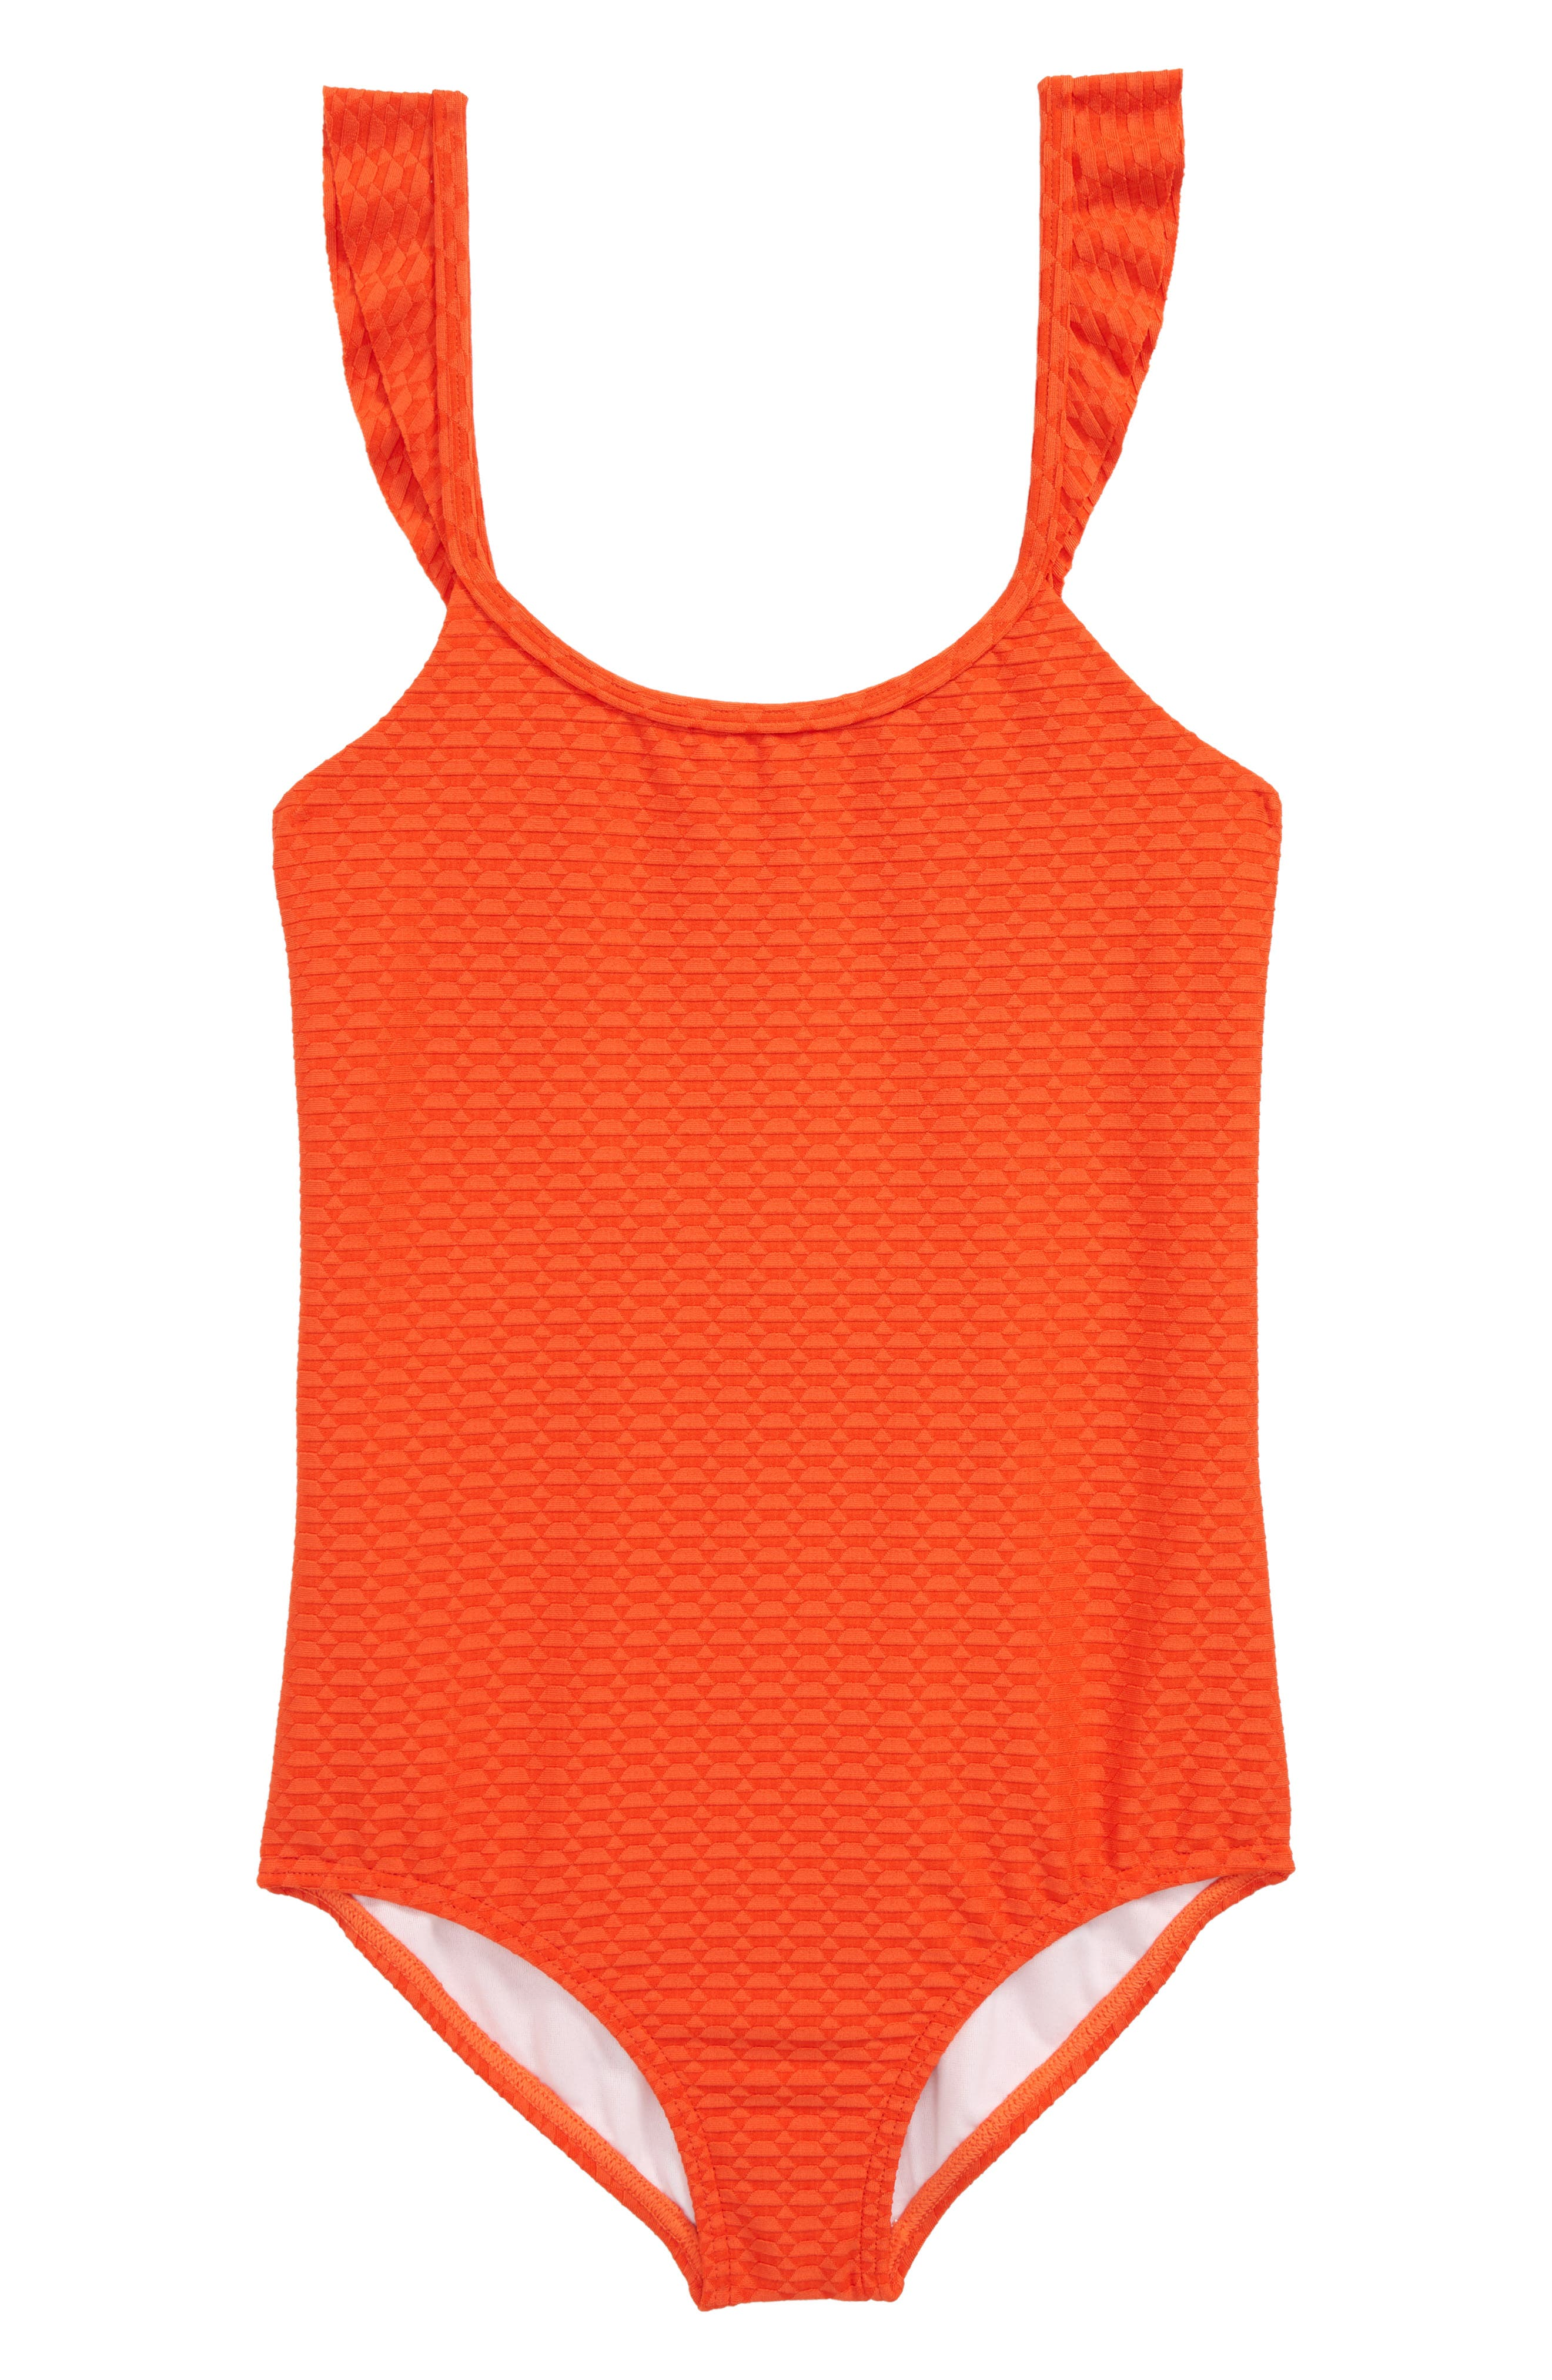 Making Shapes One-Piece Swimsuit,                             Main thumbnail 1, color,                             Poppy